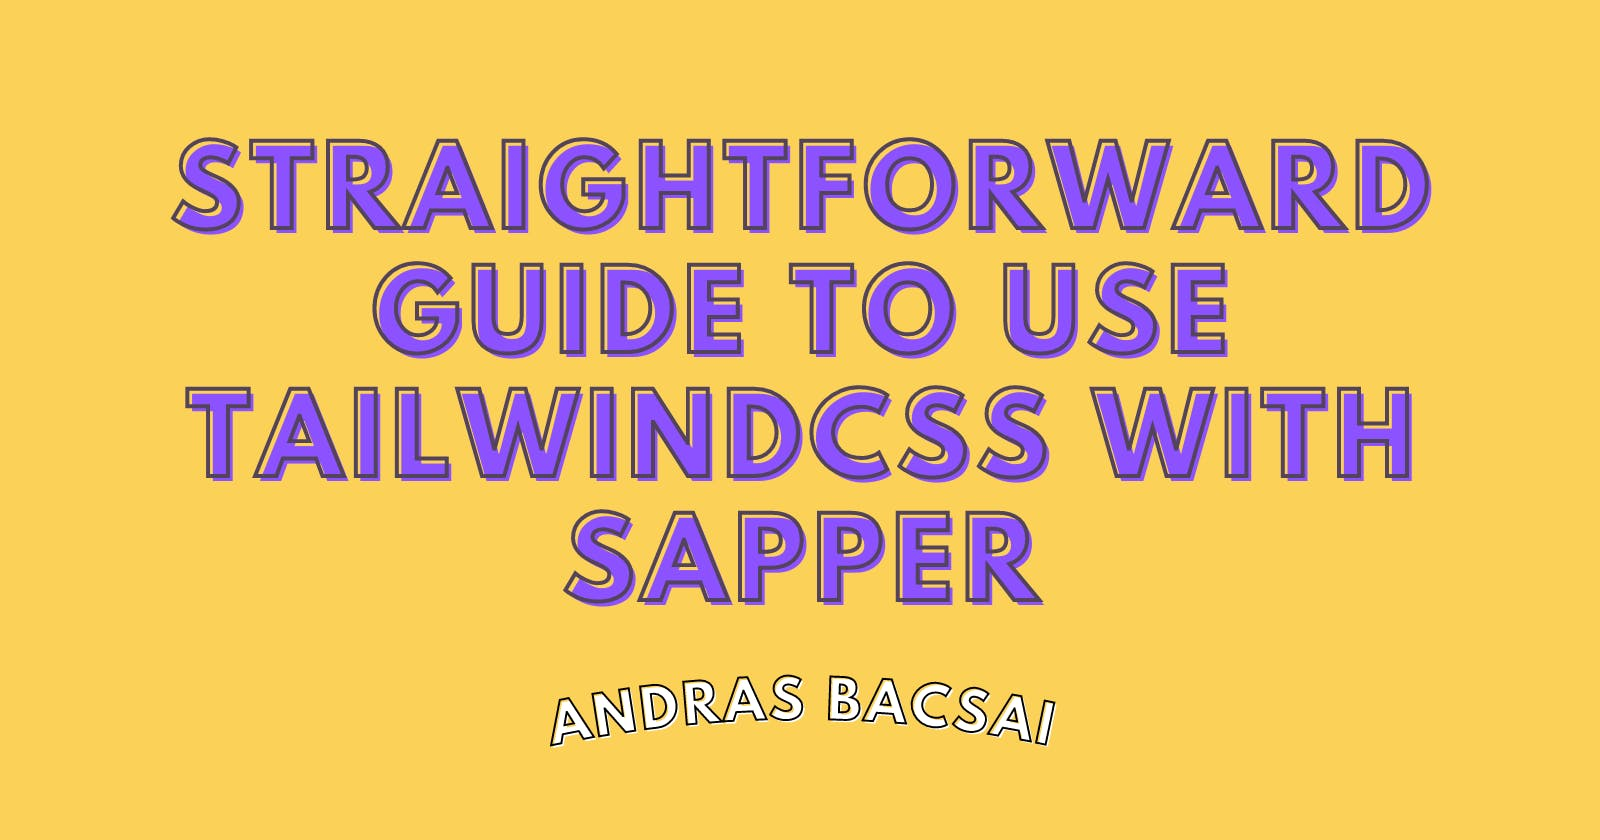 Straightforward guide to use TailwindCSS with Sapper